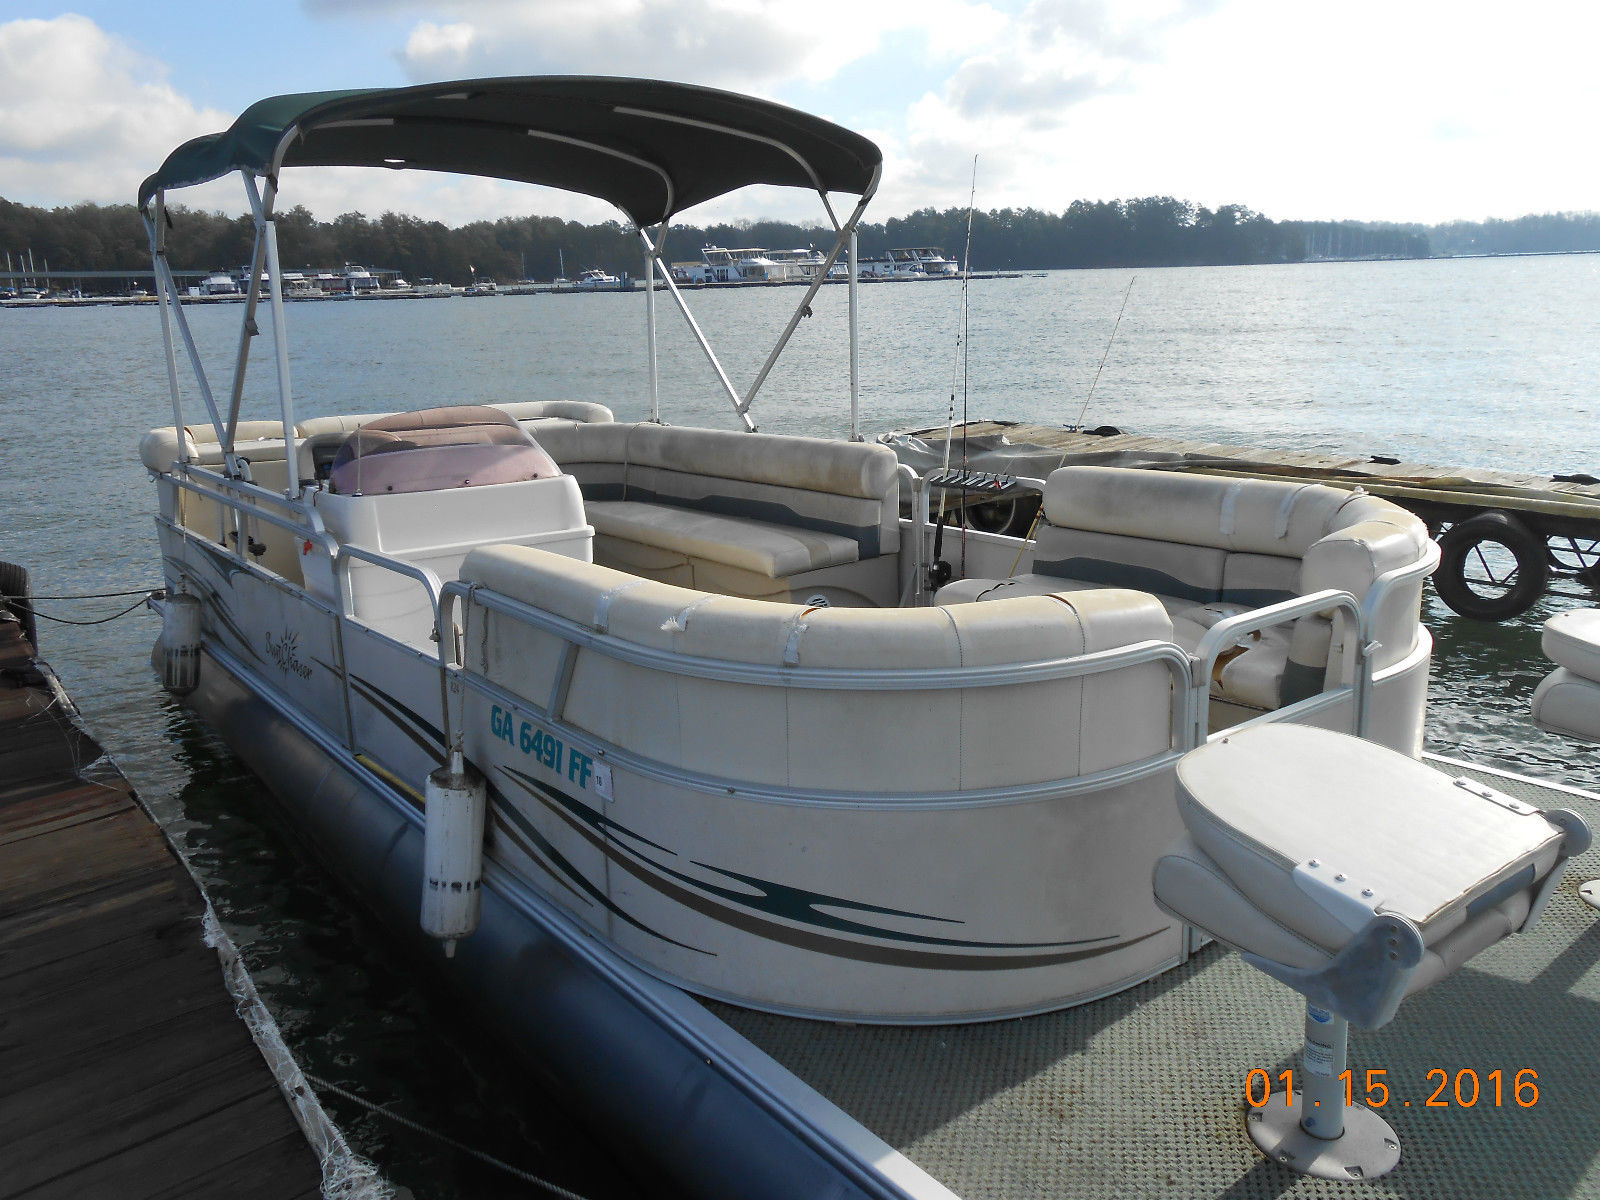 Boat Classifieds Search Engine - Cheap Boats for Sale